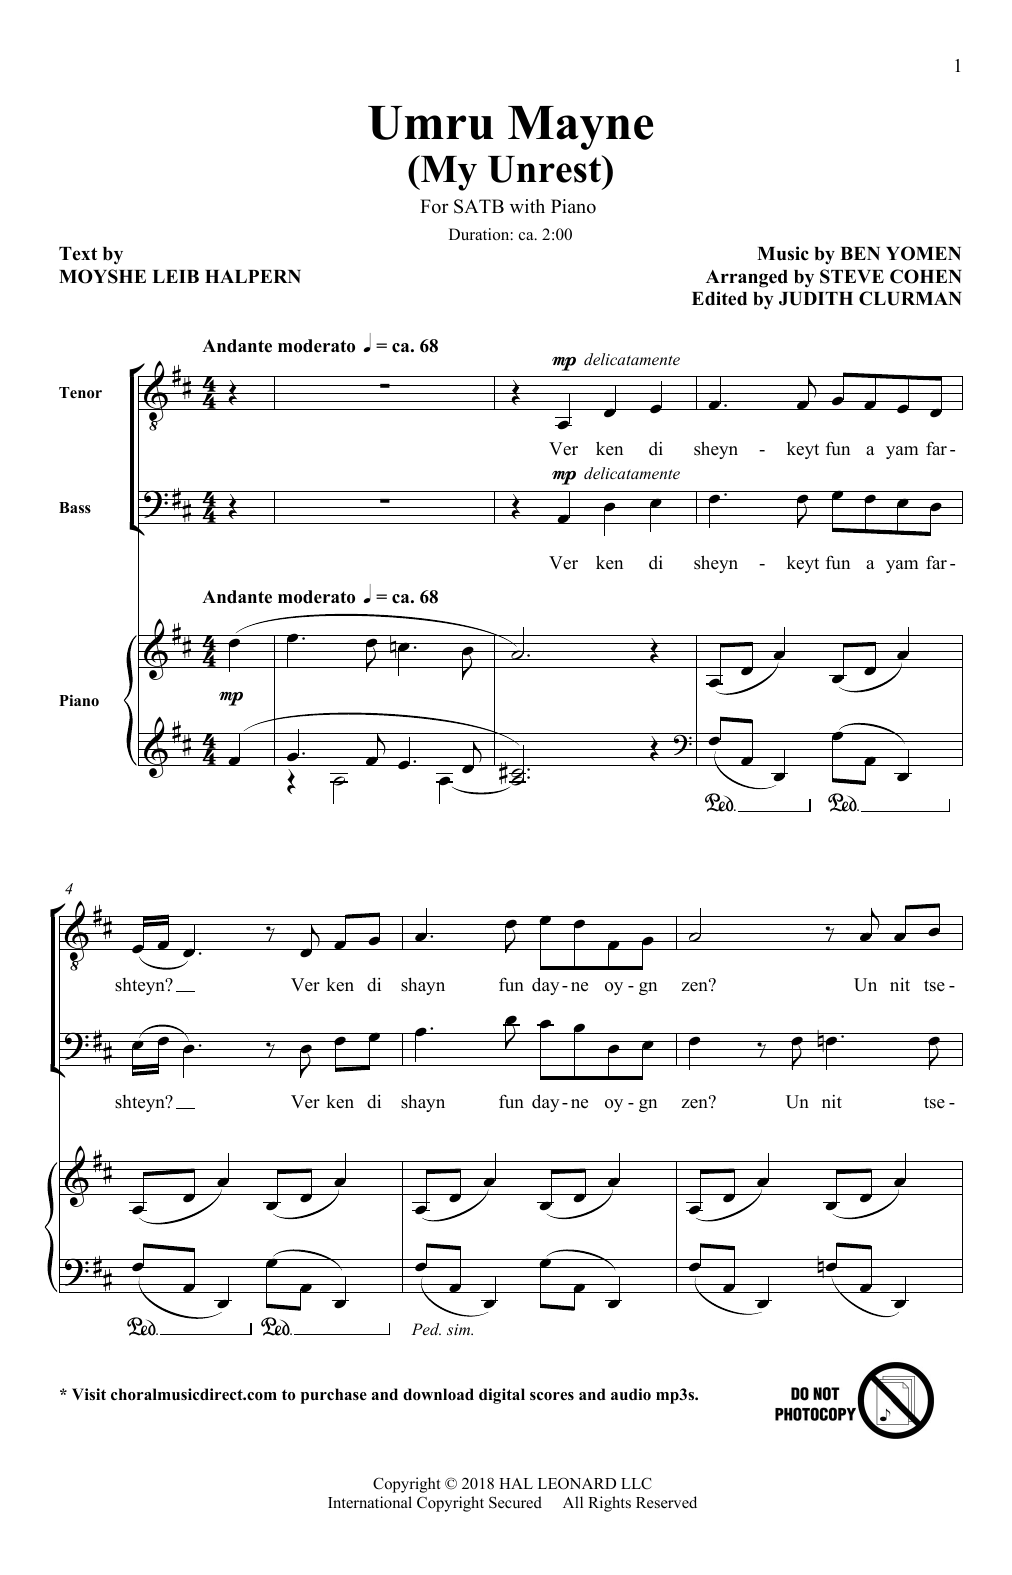 Umru Mayne (My Unrest) (arr. Steve Cohen) (SATB Choir)